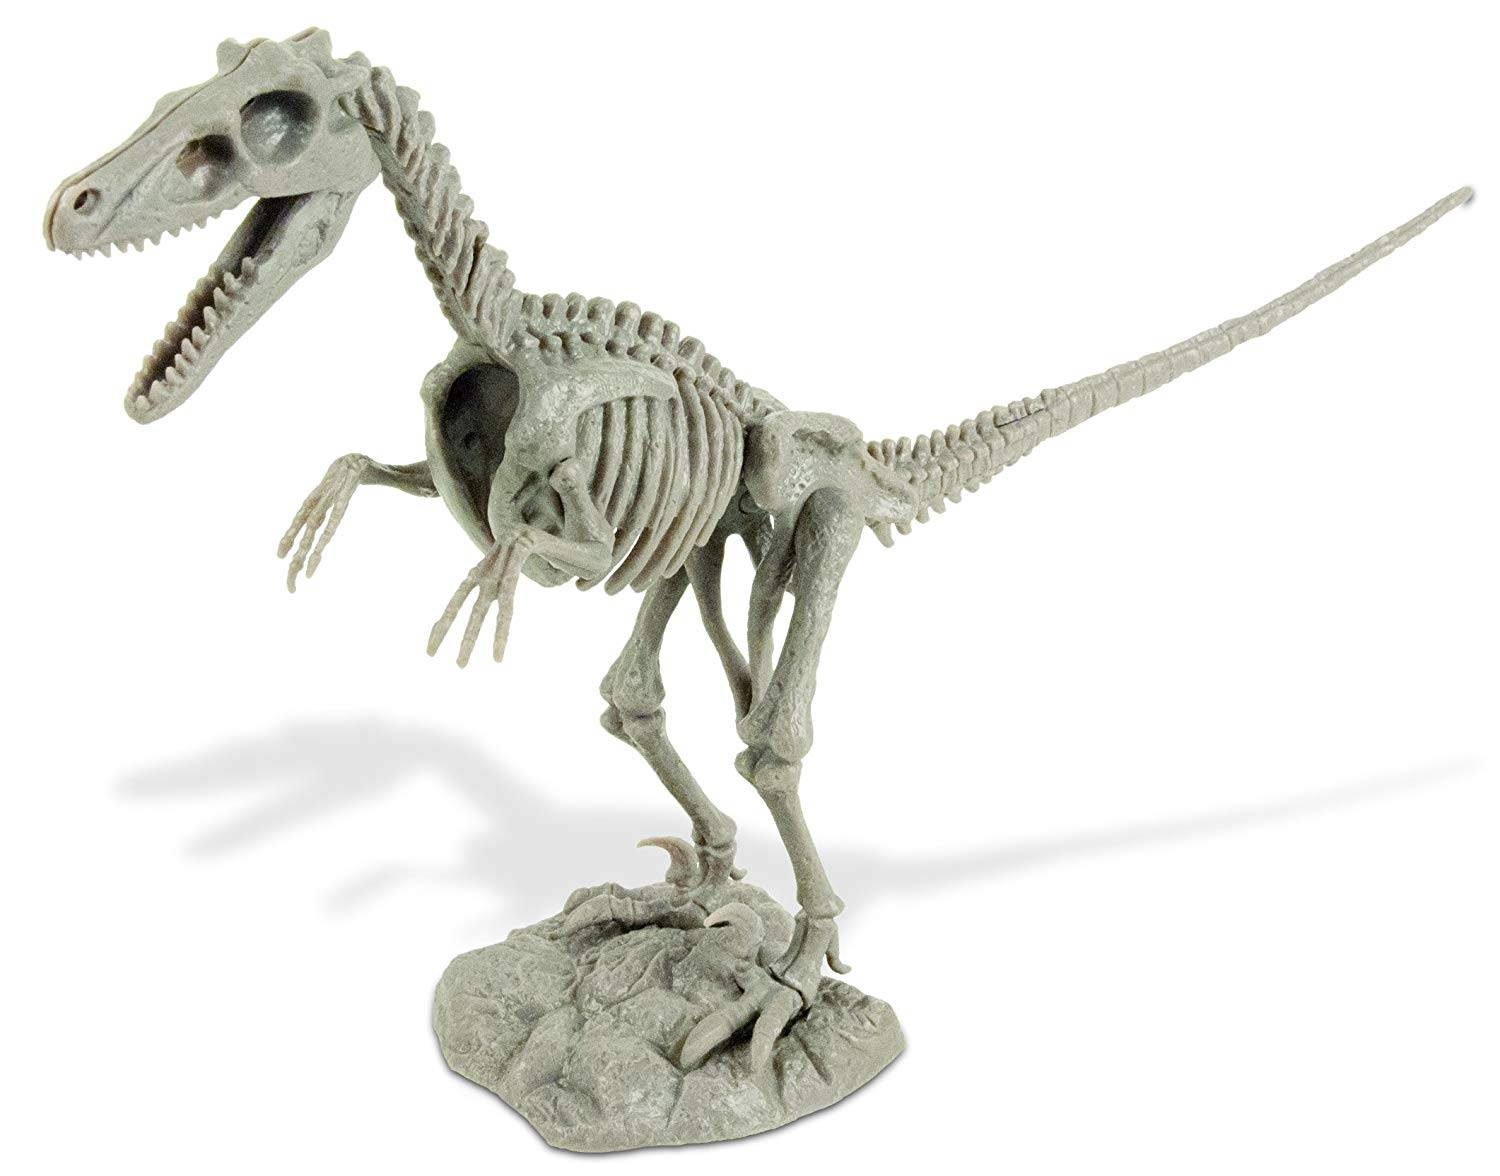 Dino Excavation Kit - Velociraptor Skeleton